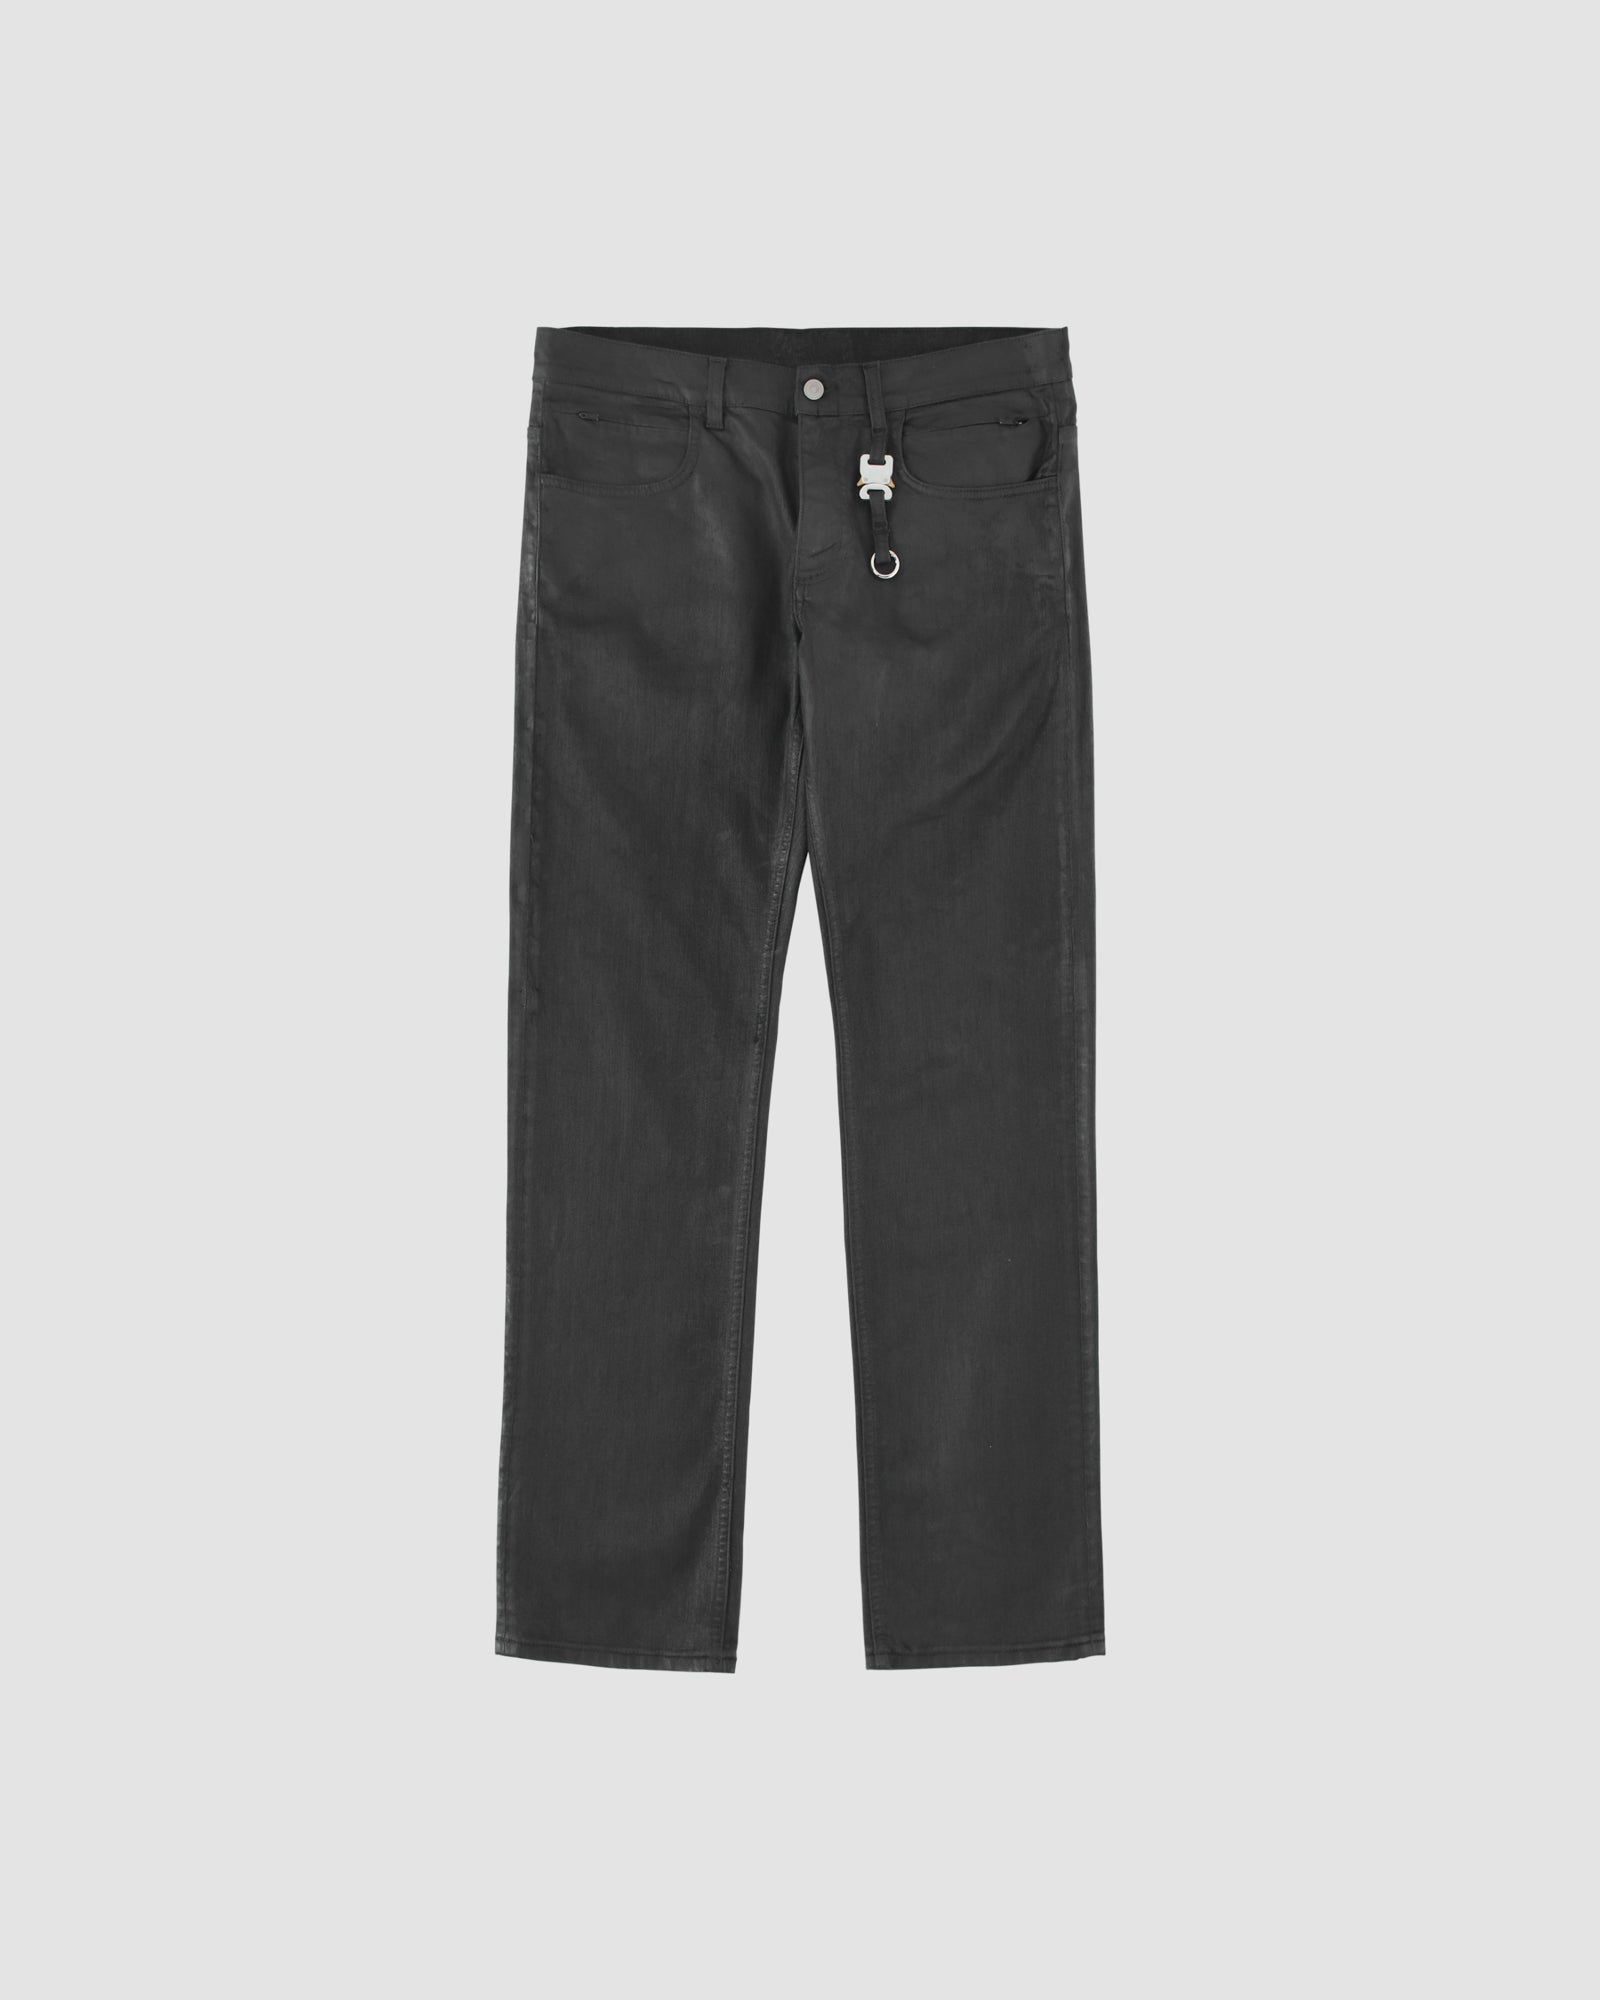 MOONLIT 6 POCKET JEAN